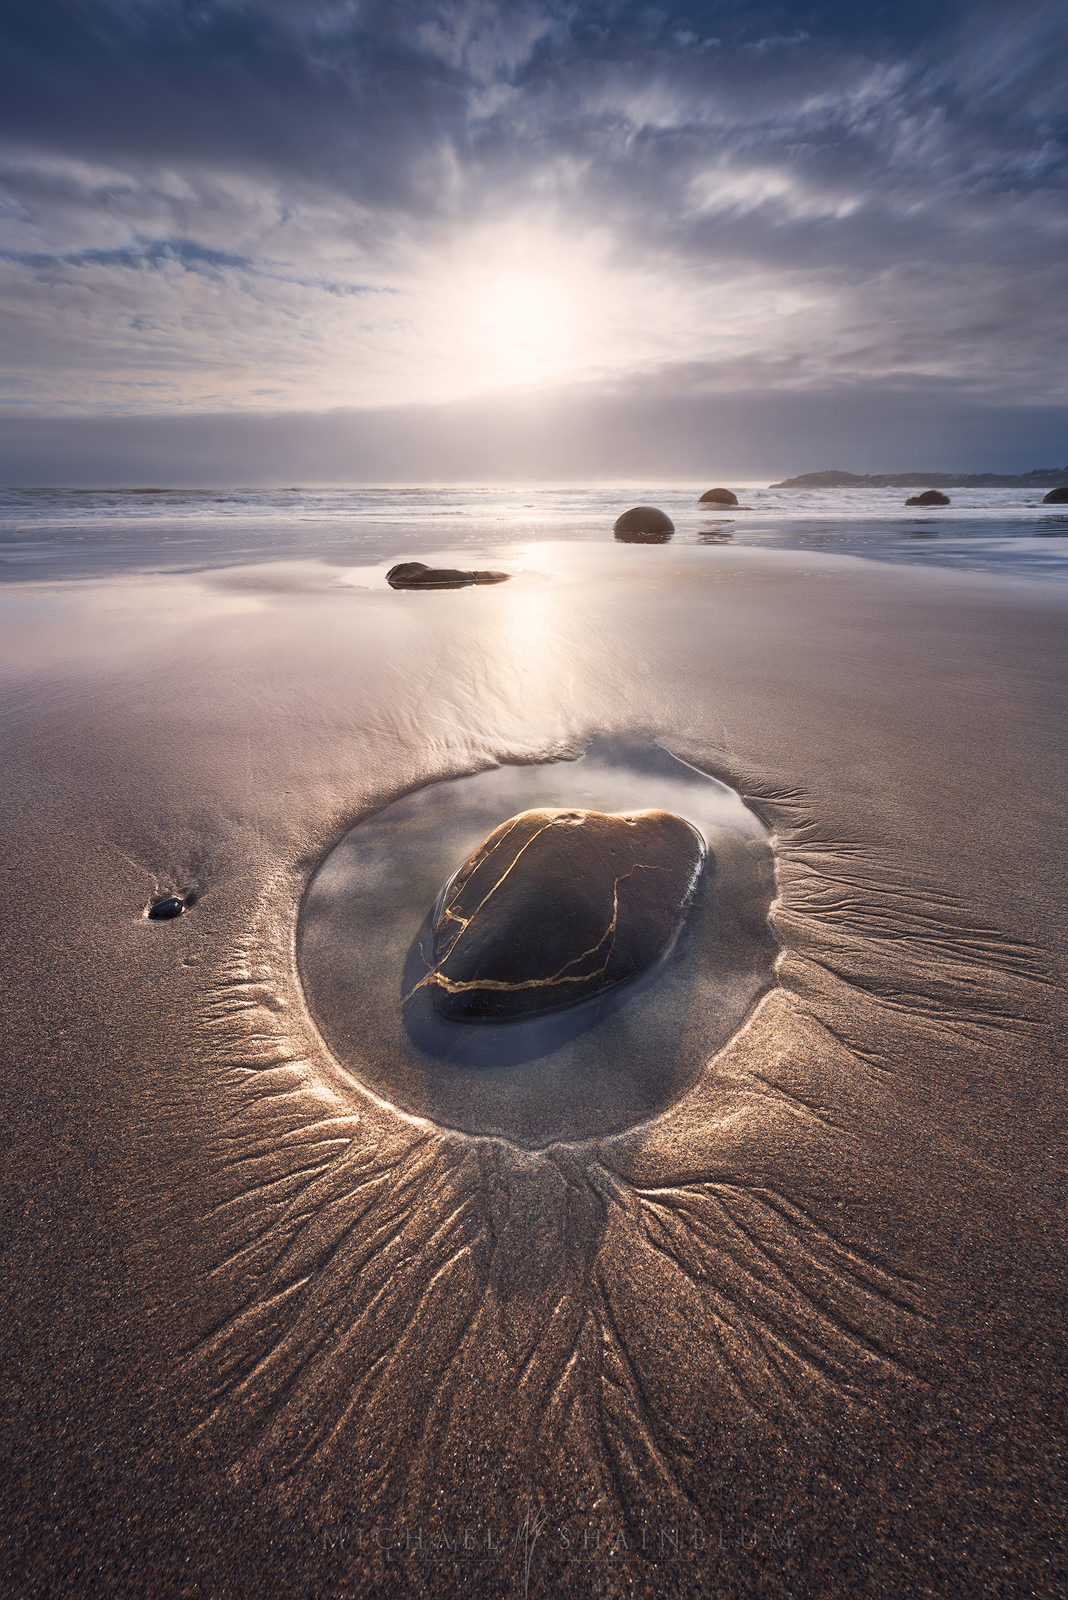 moeraki boulders, New Zealand Landscape Photography